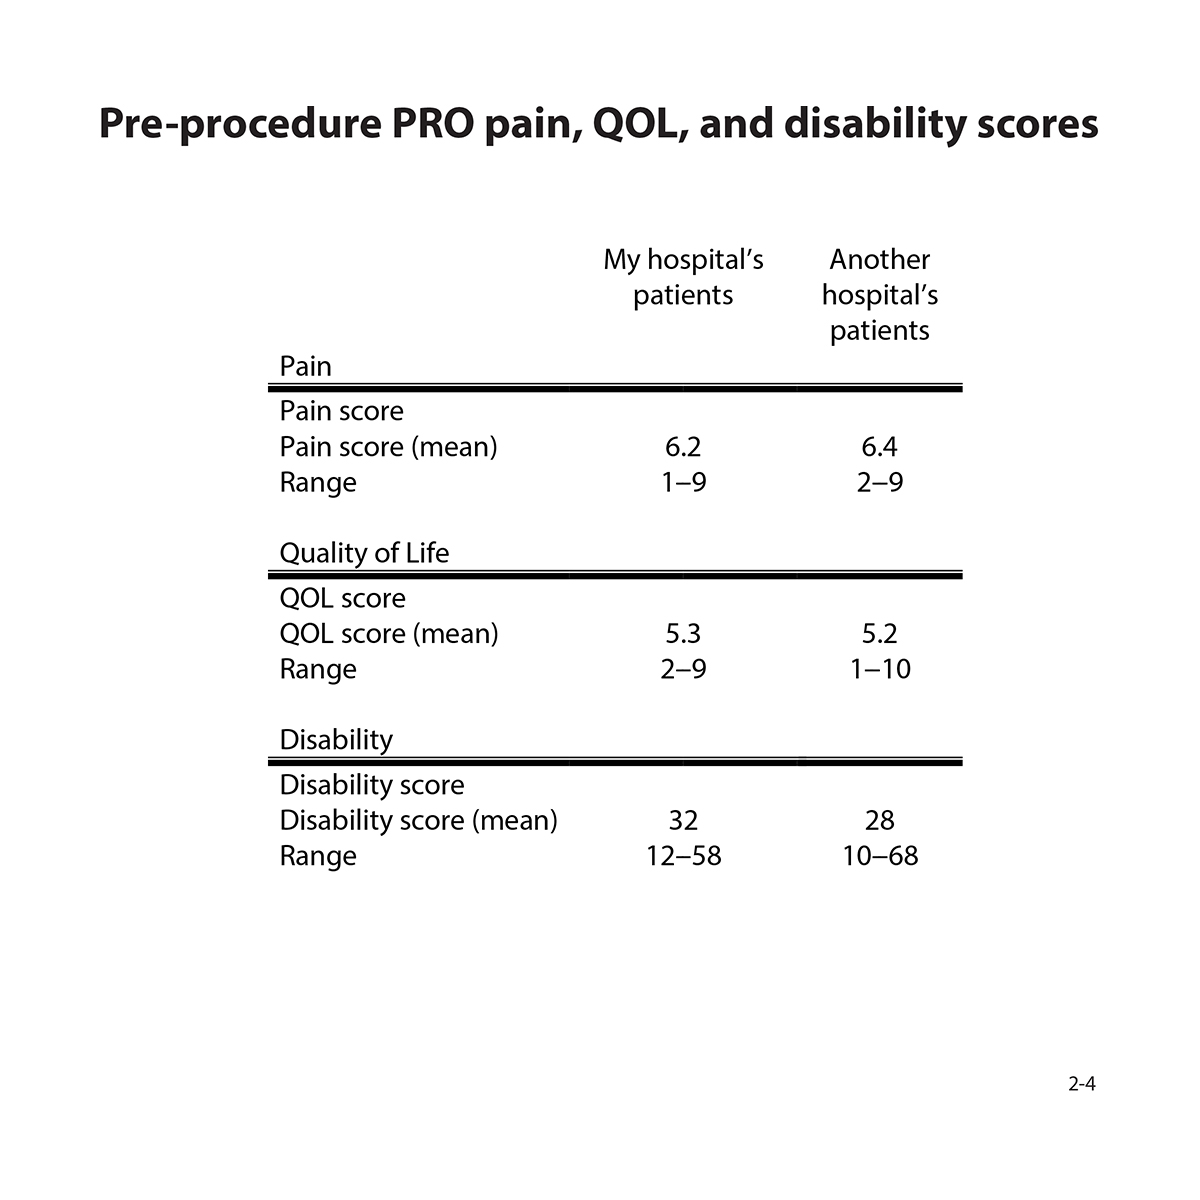 Table showing pre-procedure PRO pain, quality of life, and disability scores: (compare my hospital to another hospital's patients). Mean and range shown.